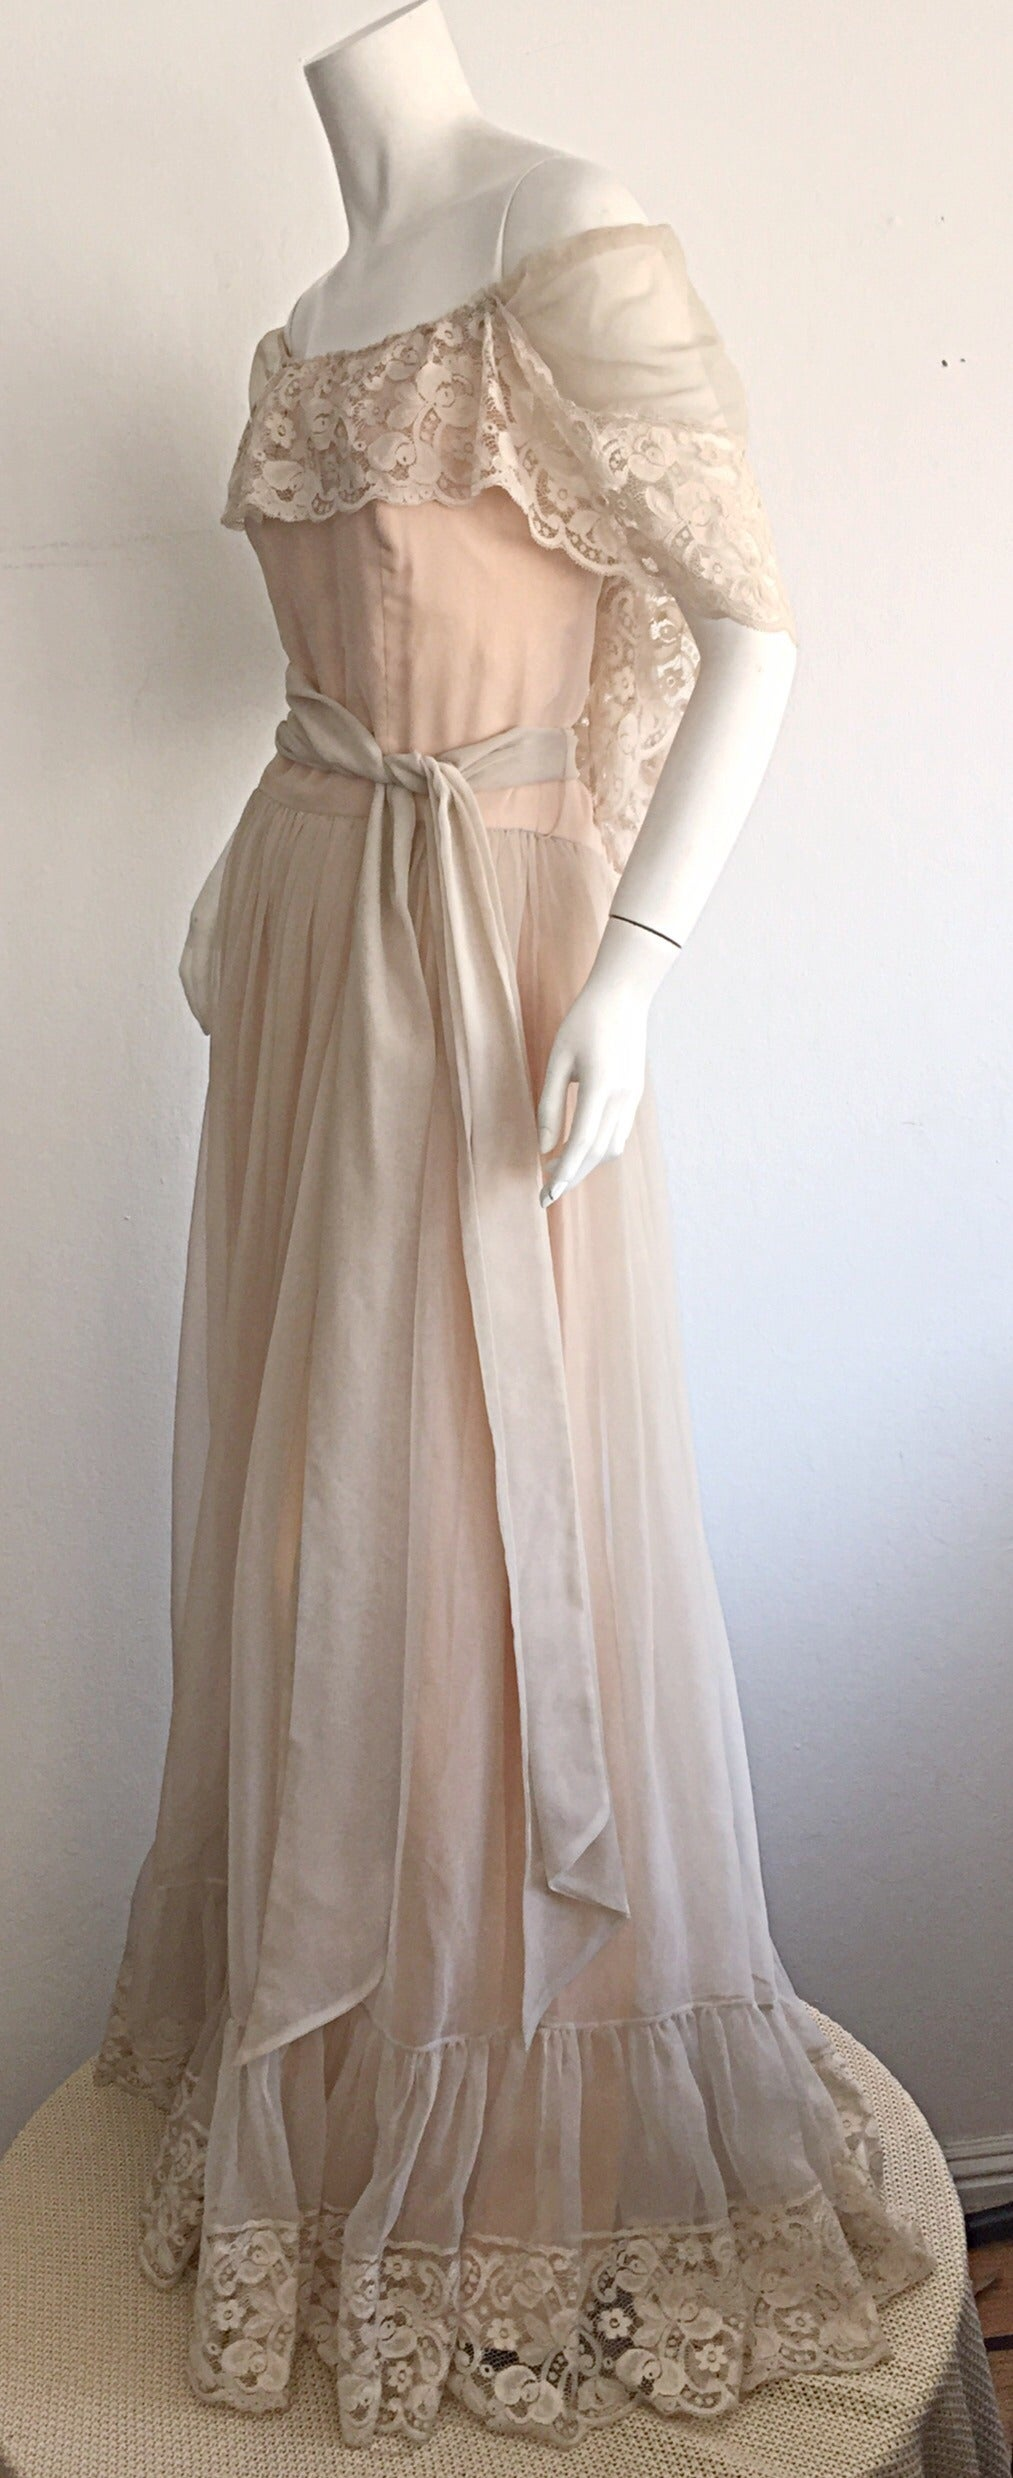 Beautiful Ethereal Vintage Victor Costa Cream Lace Bohemian Wedding Dress / Gown In Excellent Condition For Sale In San Francisco, CA